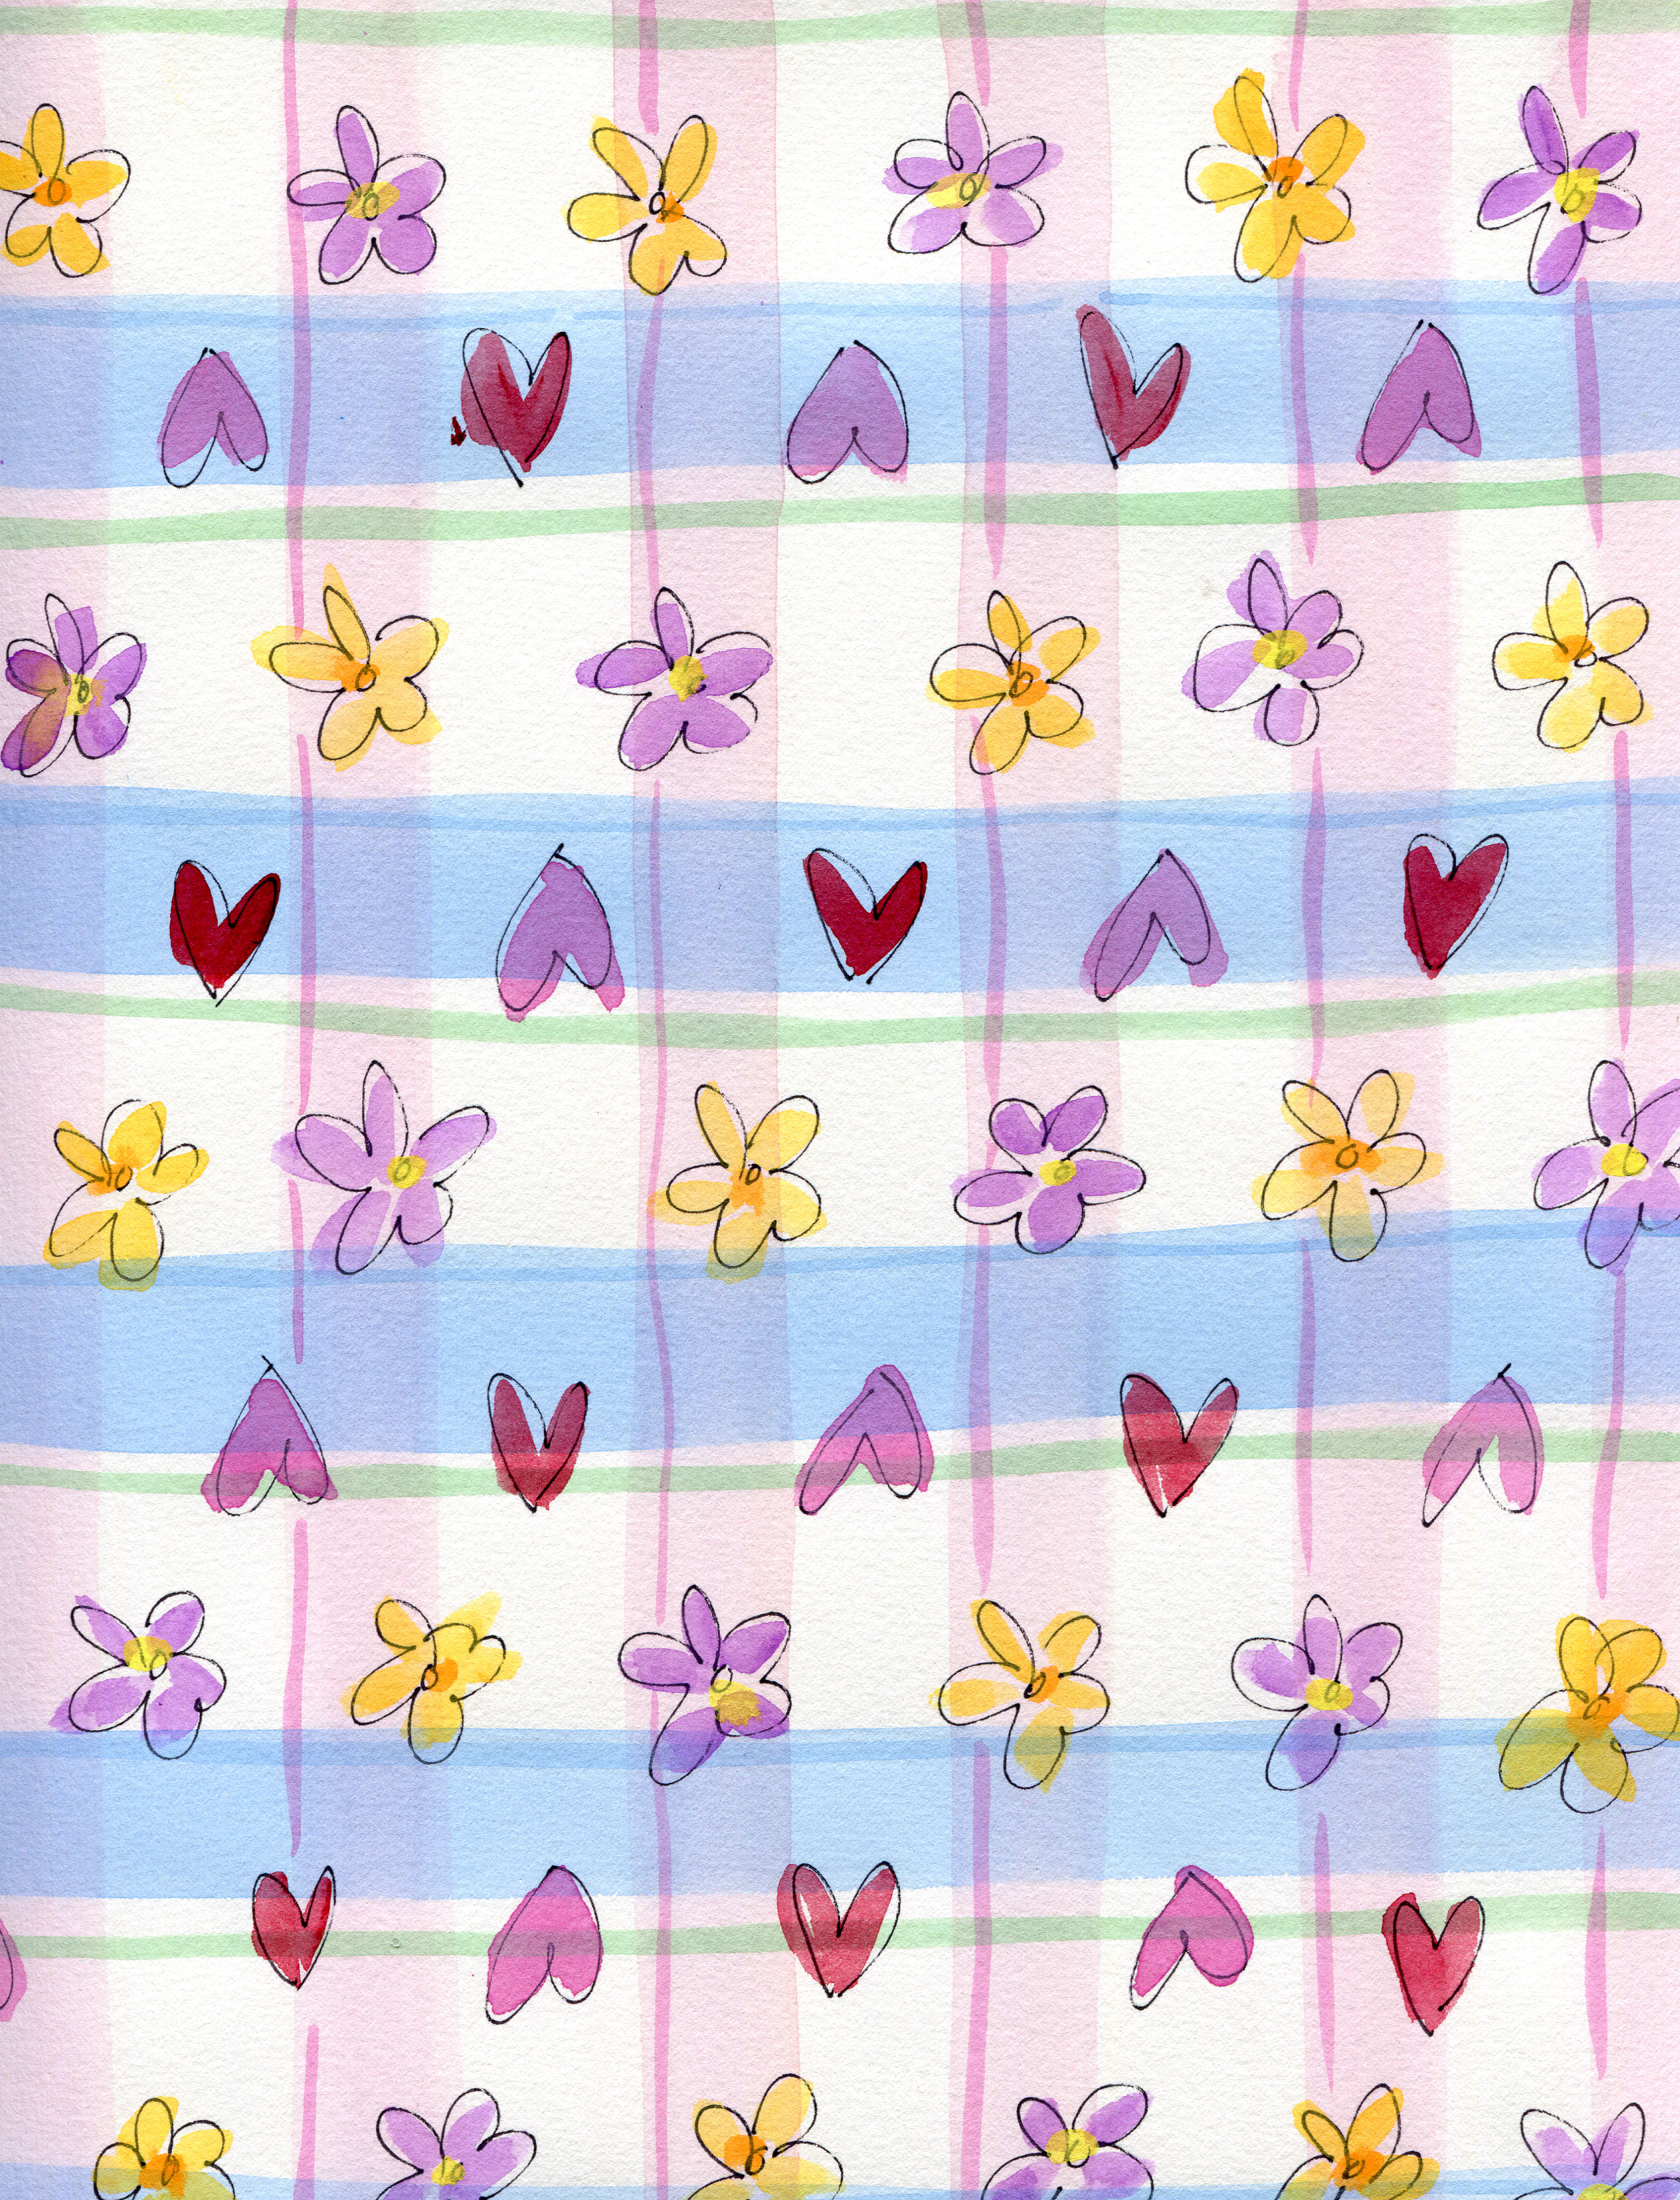 04a08 hearts flowers